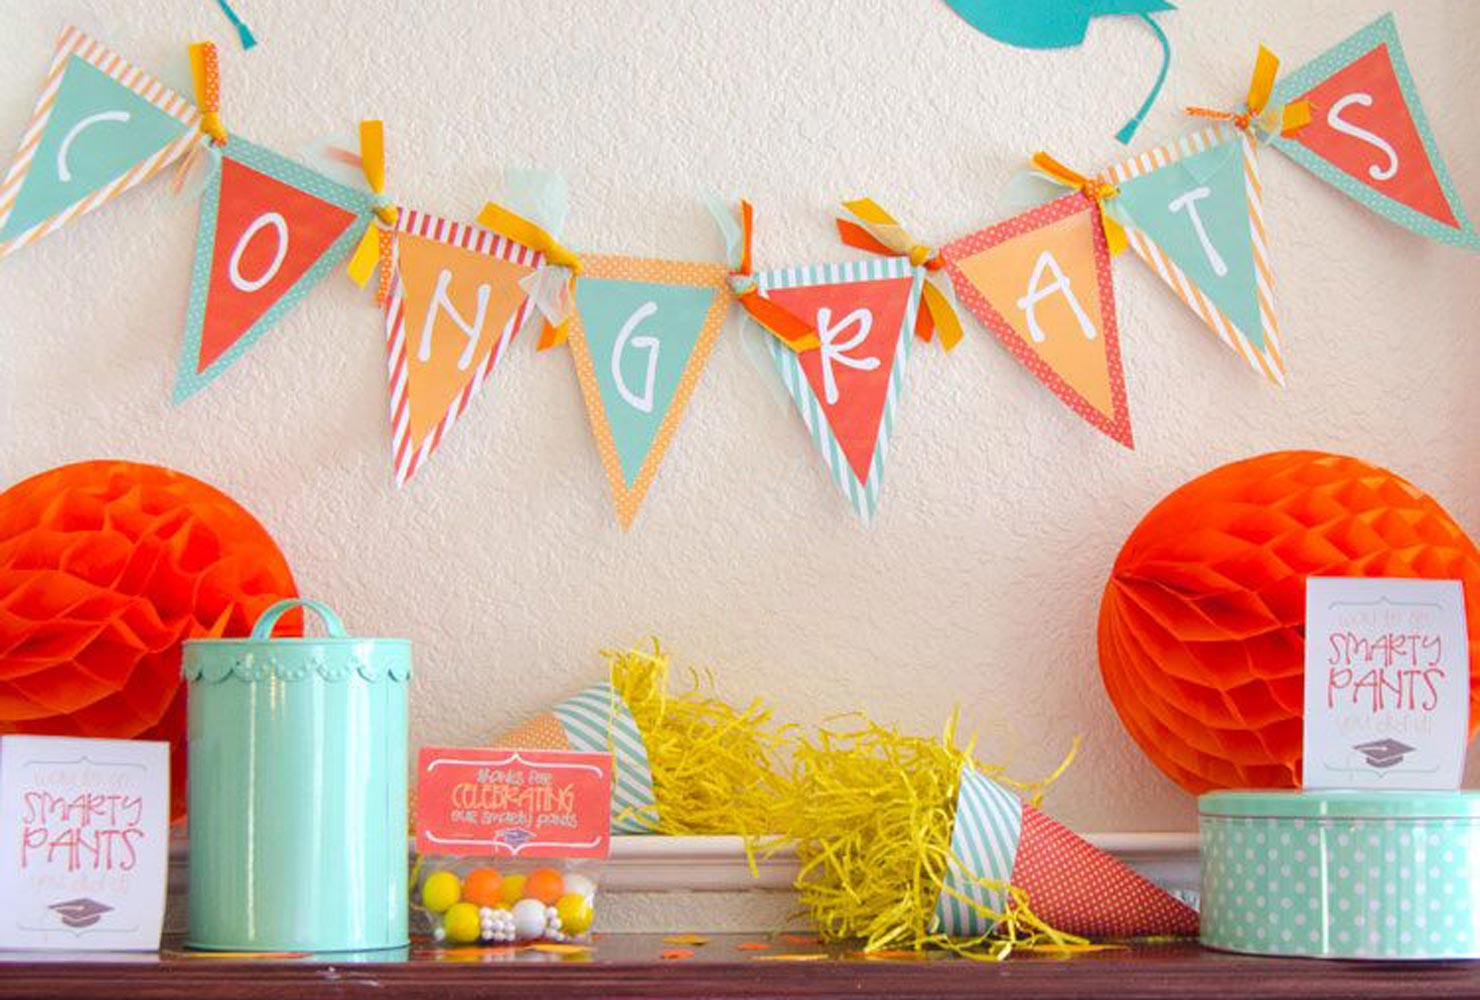 Around The World Decoration Ideas 90 Graduation Party Ideas Your Grad Will Love In 2019 Shutterfly